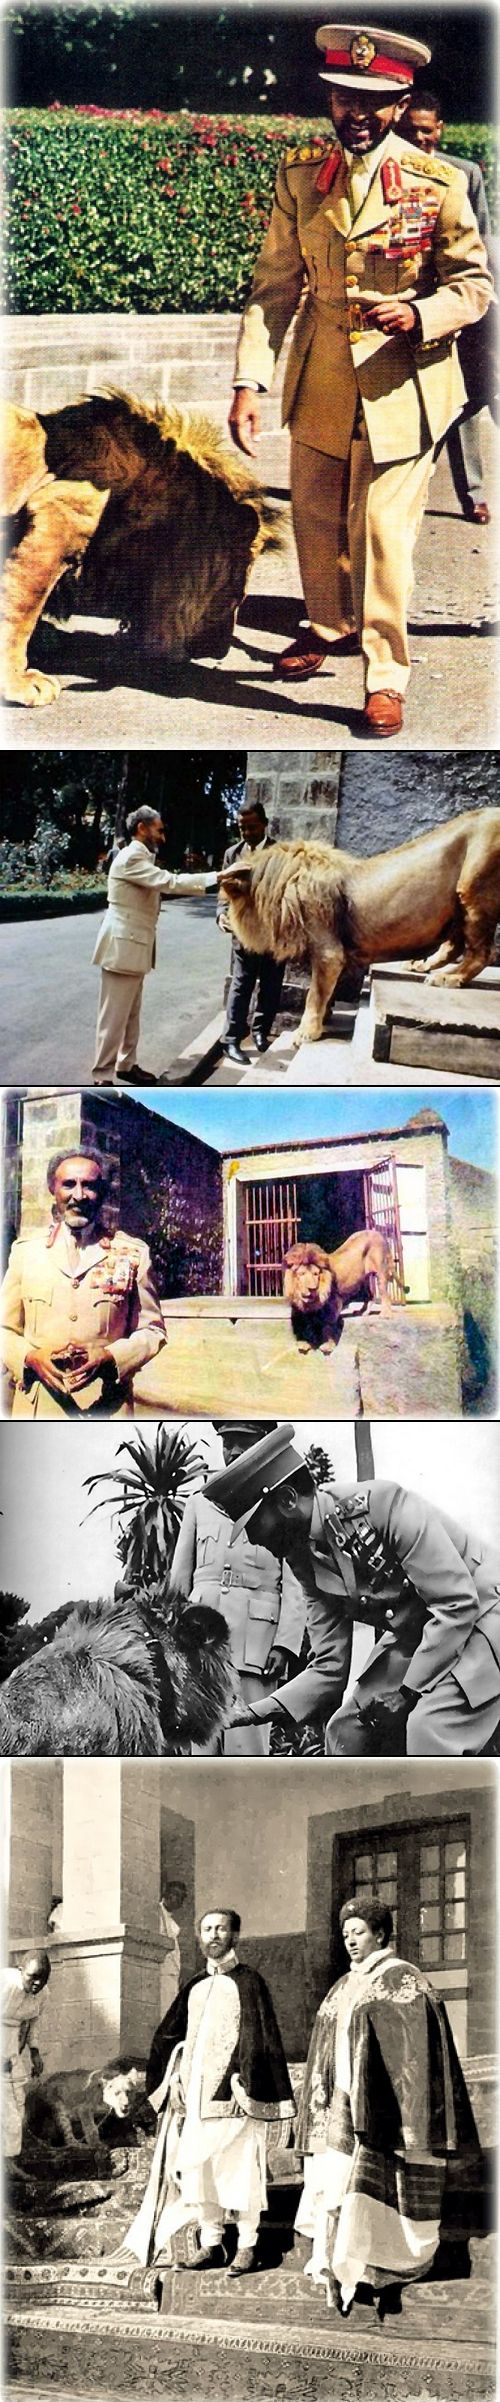 AFRICA'S LAST Ethiopian Emperor Haile Selassie I with his Lions. The lion is considered as Ethiopia's national animal and can be seen on various national artifacts such as the Ethiopian Lion of Judah flag and Ethiopian Airline.